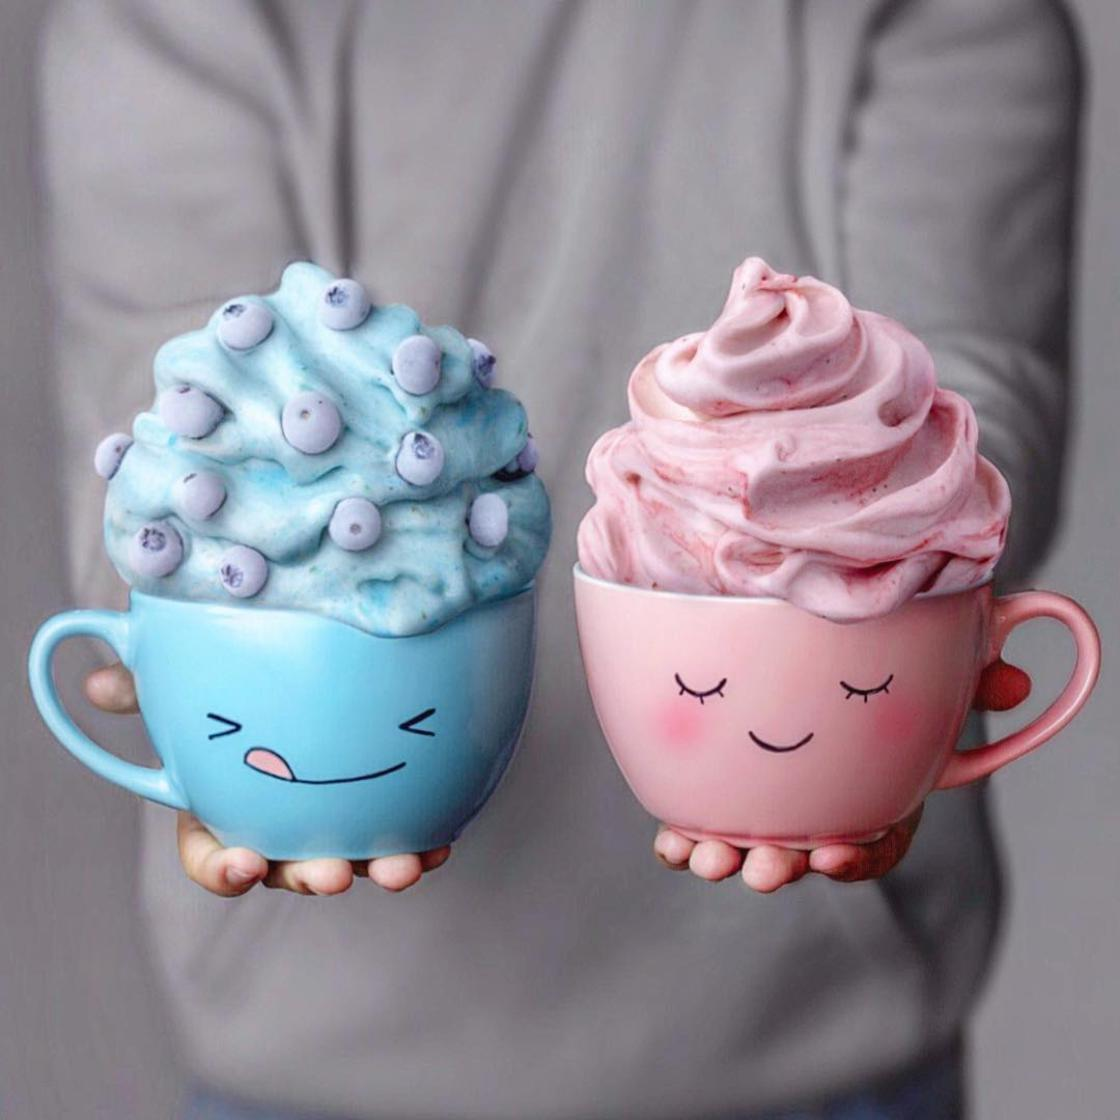 The latest vegan creations of Naturally Jo are ultra kawaii and colorful (22 pics)